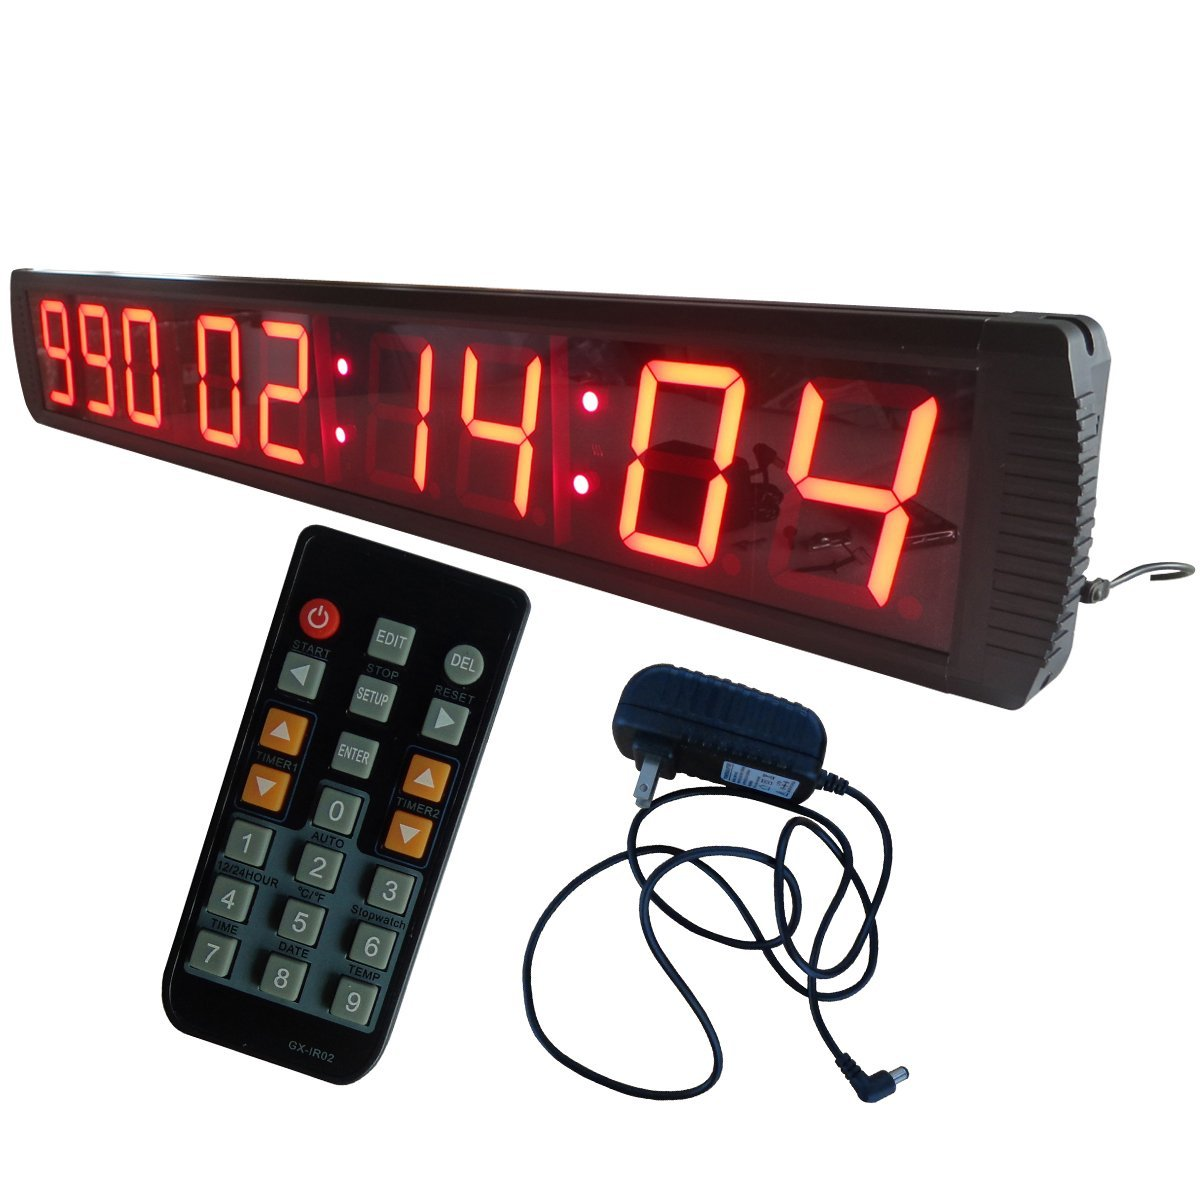 9 Minutes 59 Seconds Large LED Digital CountdownTimer in MINTS SECS max